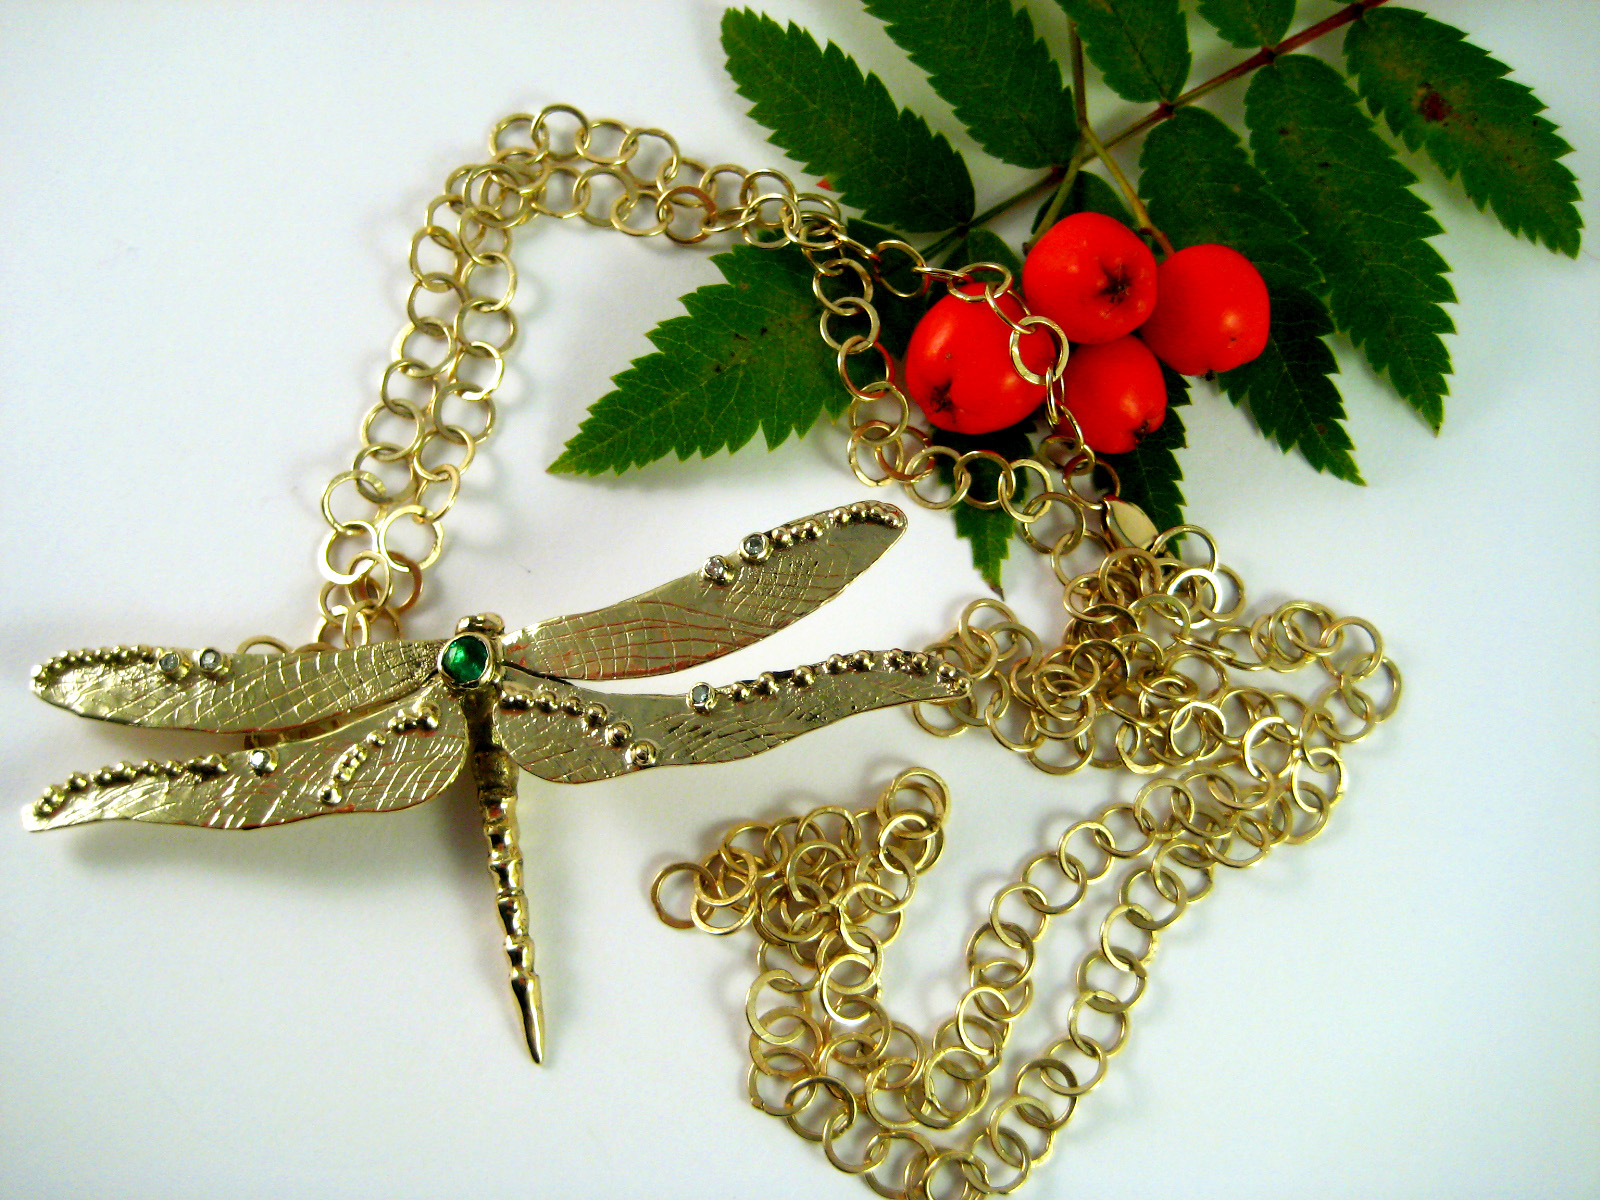 Gold Dragonfly and Handmade Chain